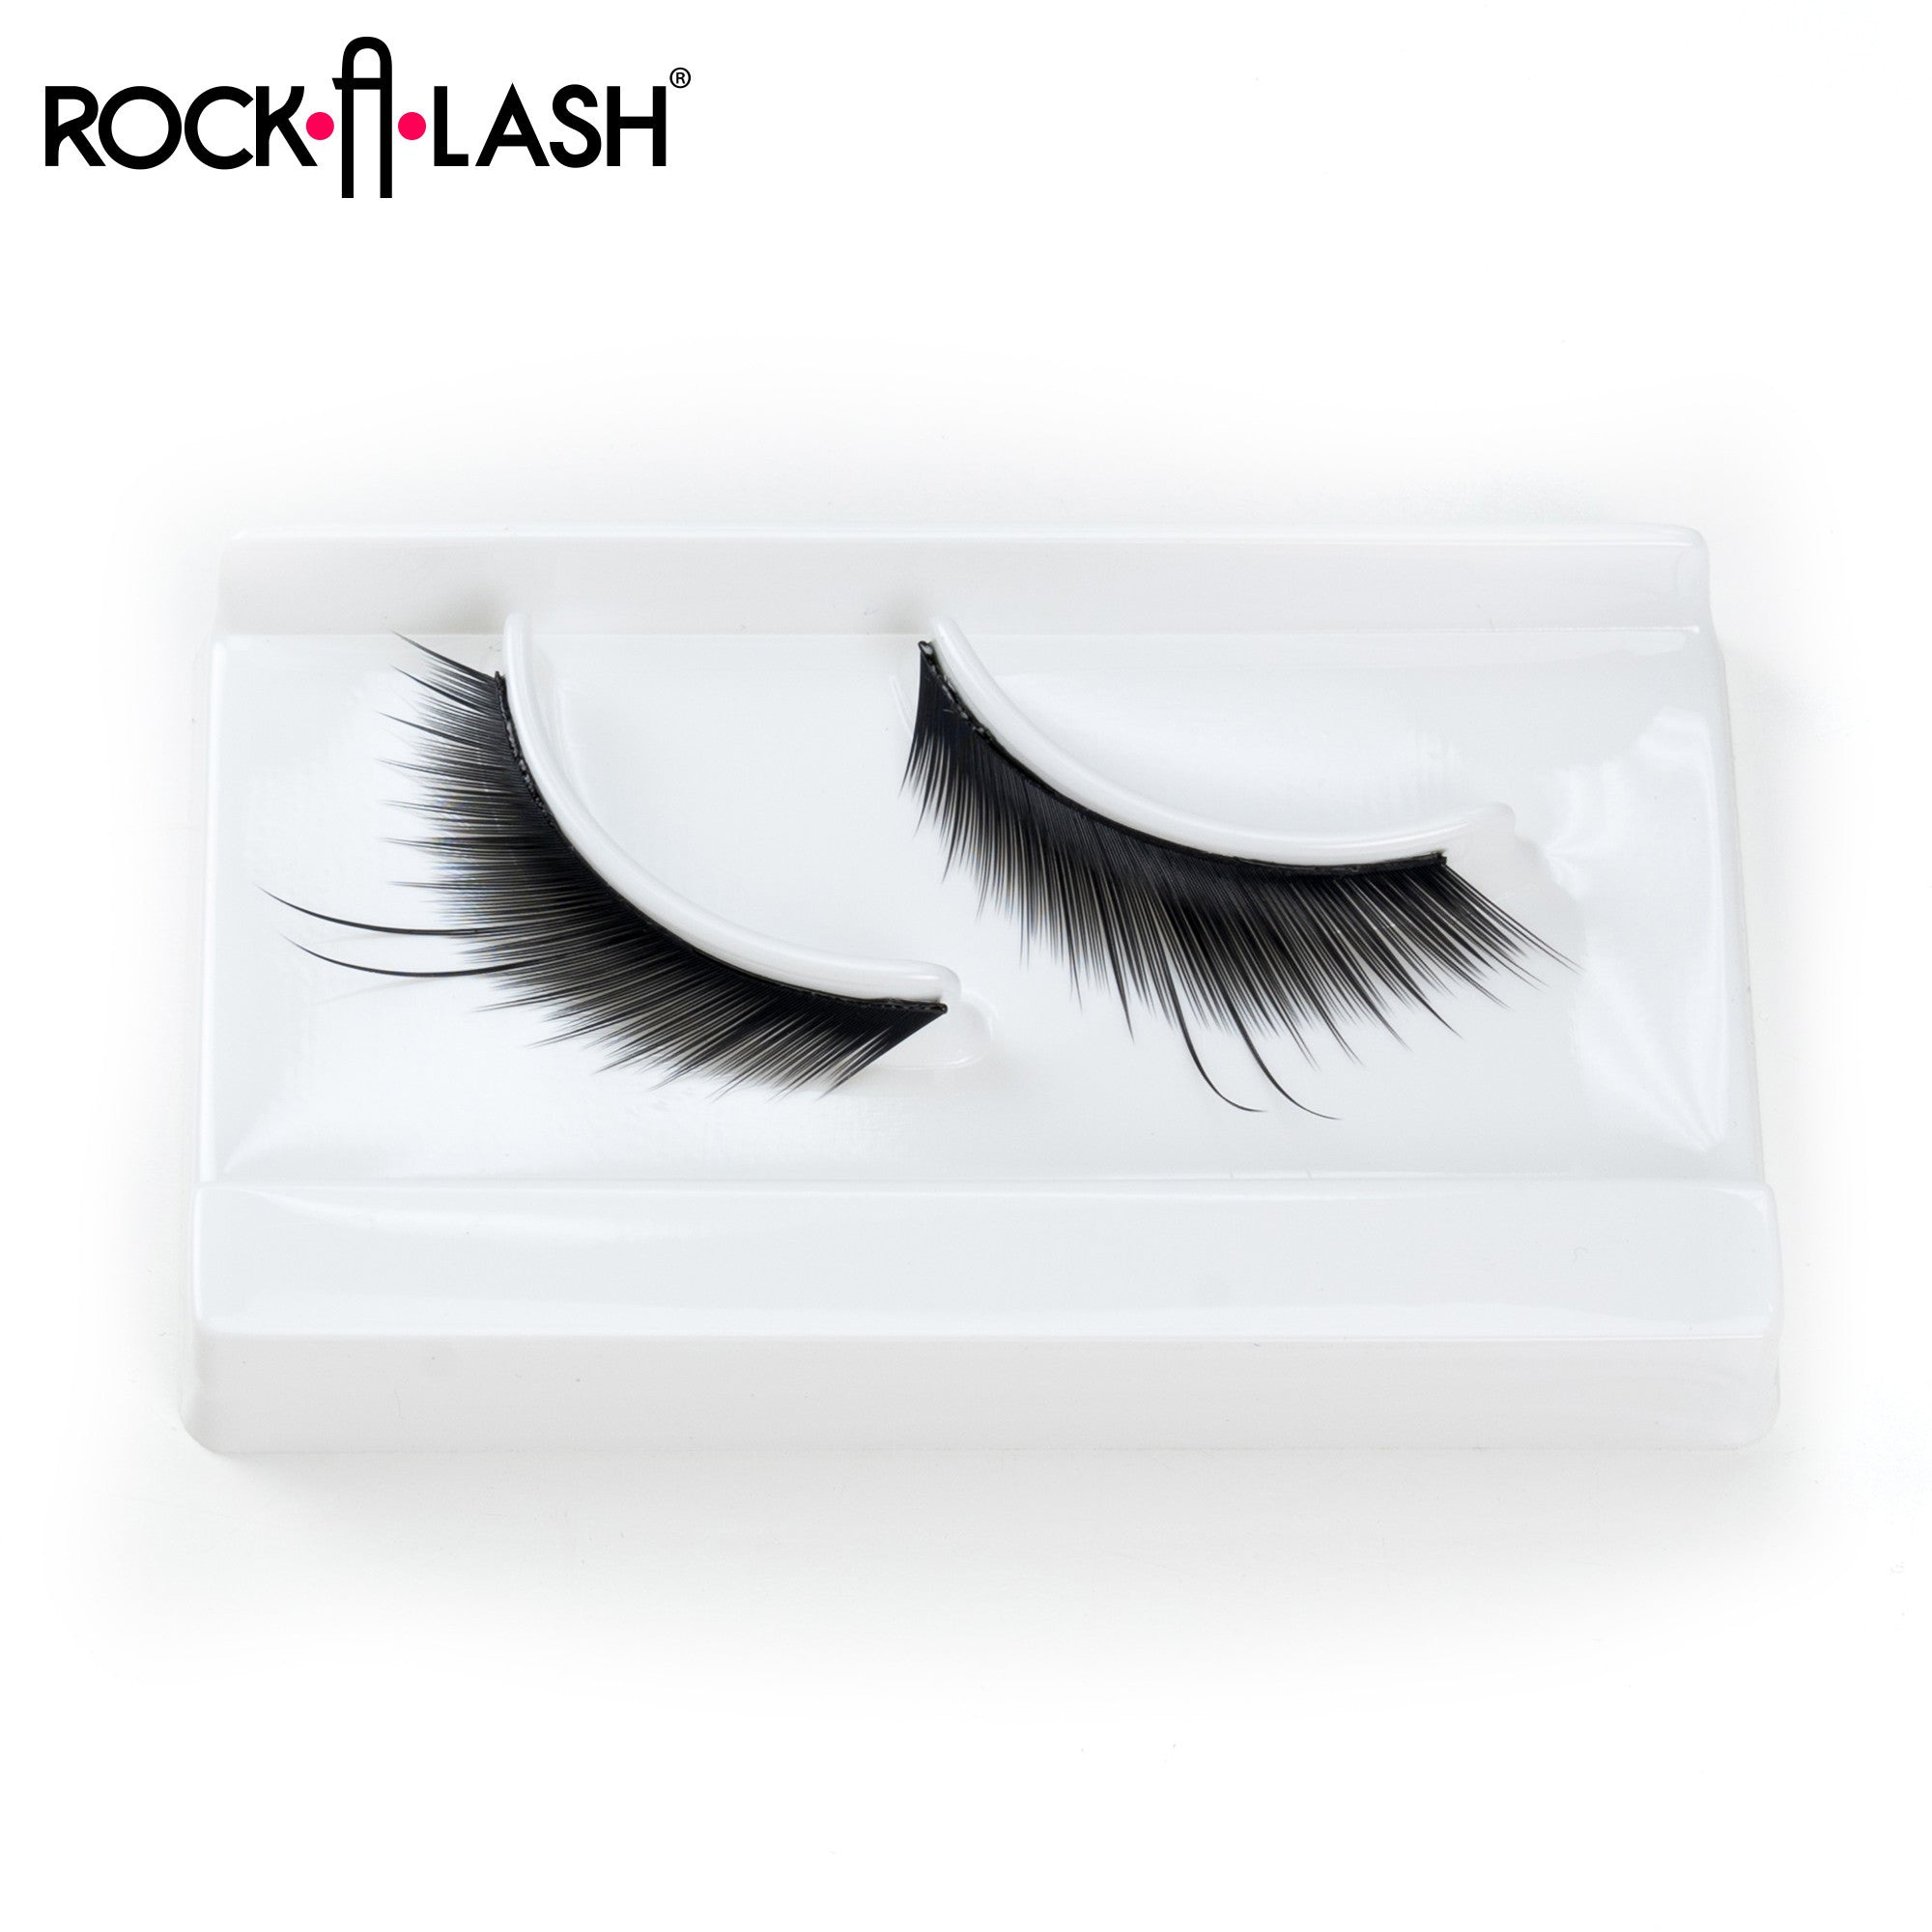 Rock-A-Lash ® <br> #10 Chicago - 1 Pair